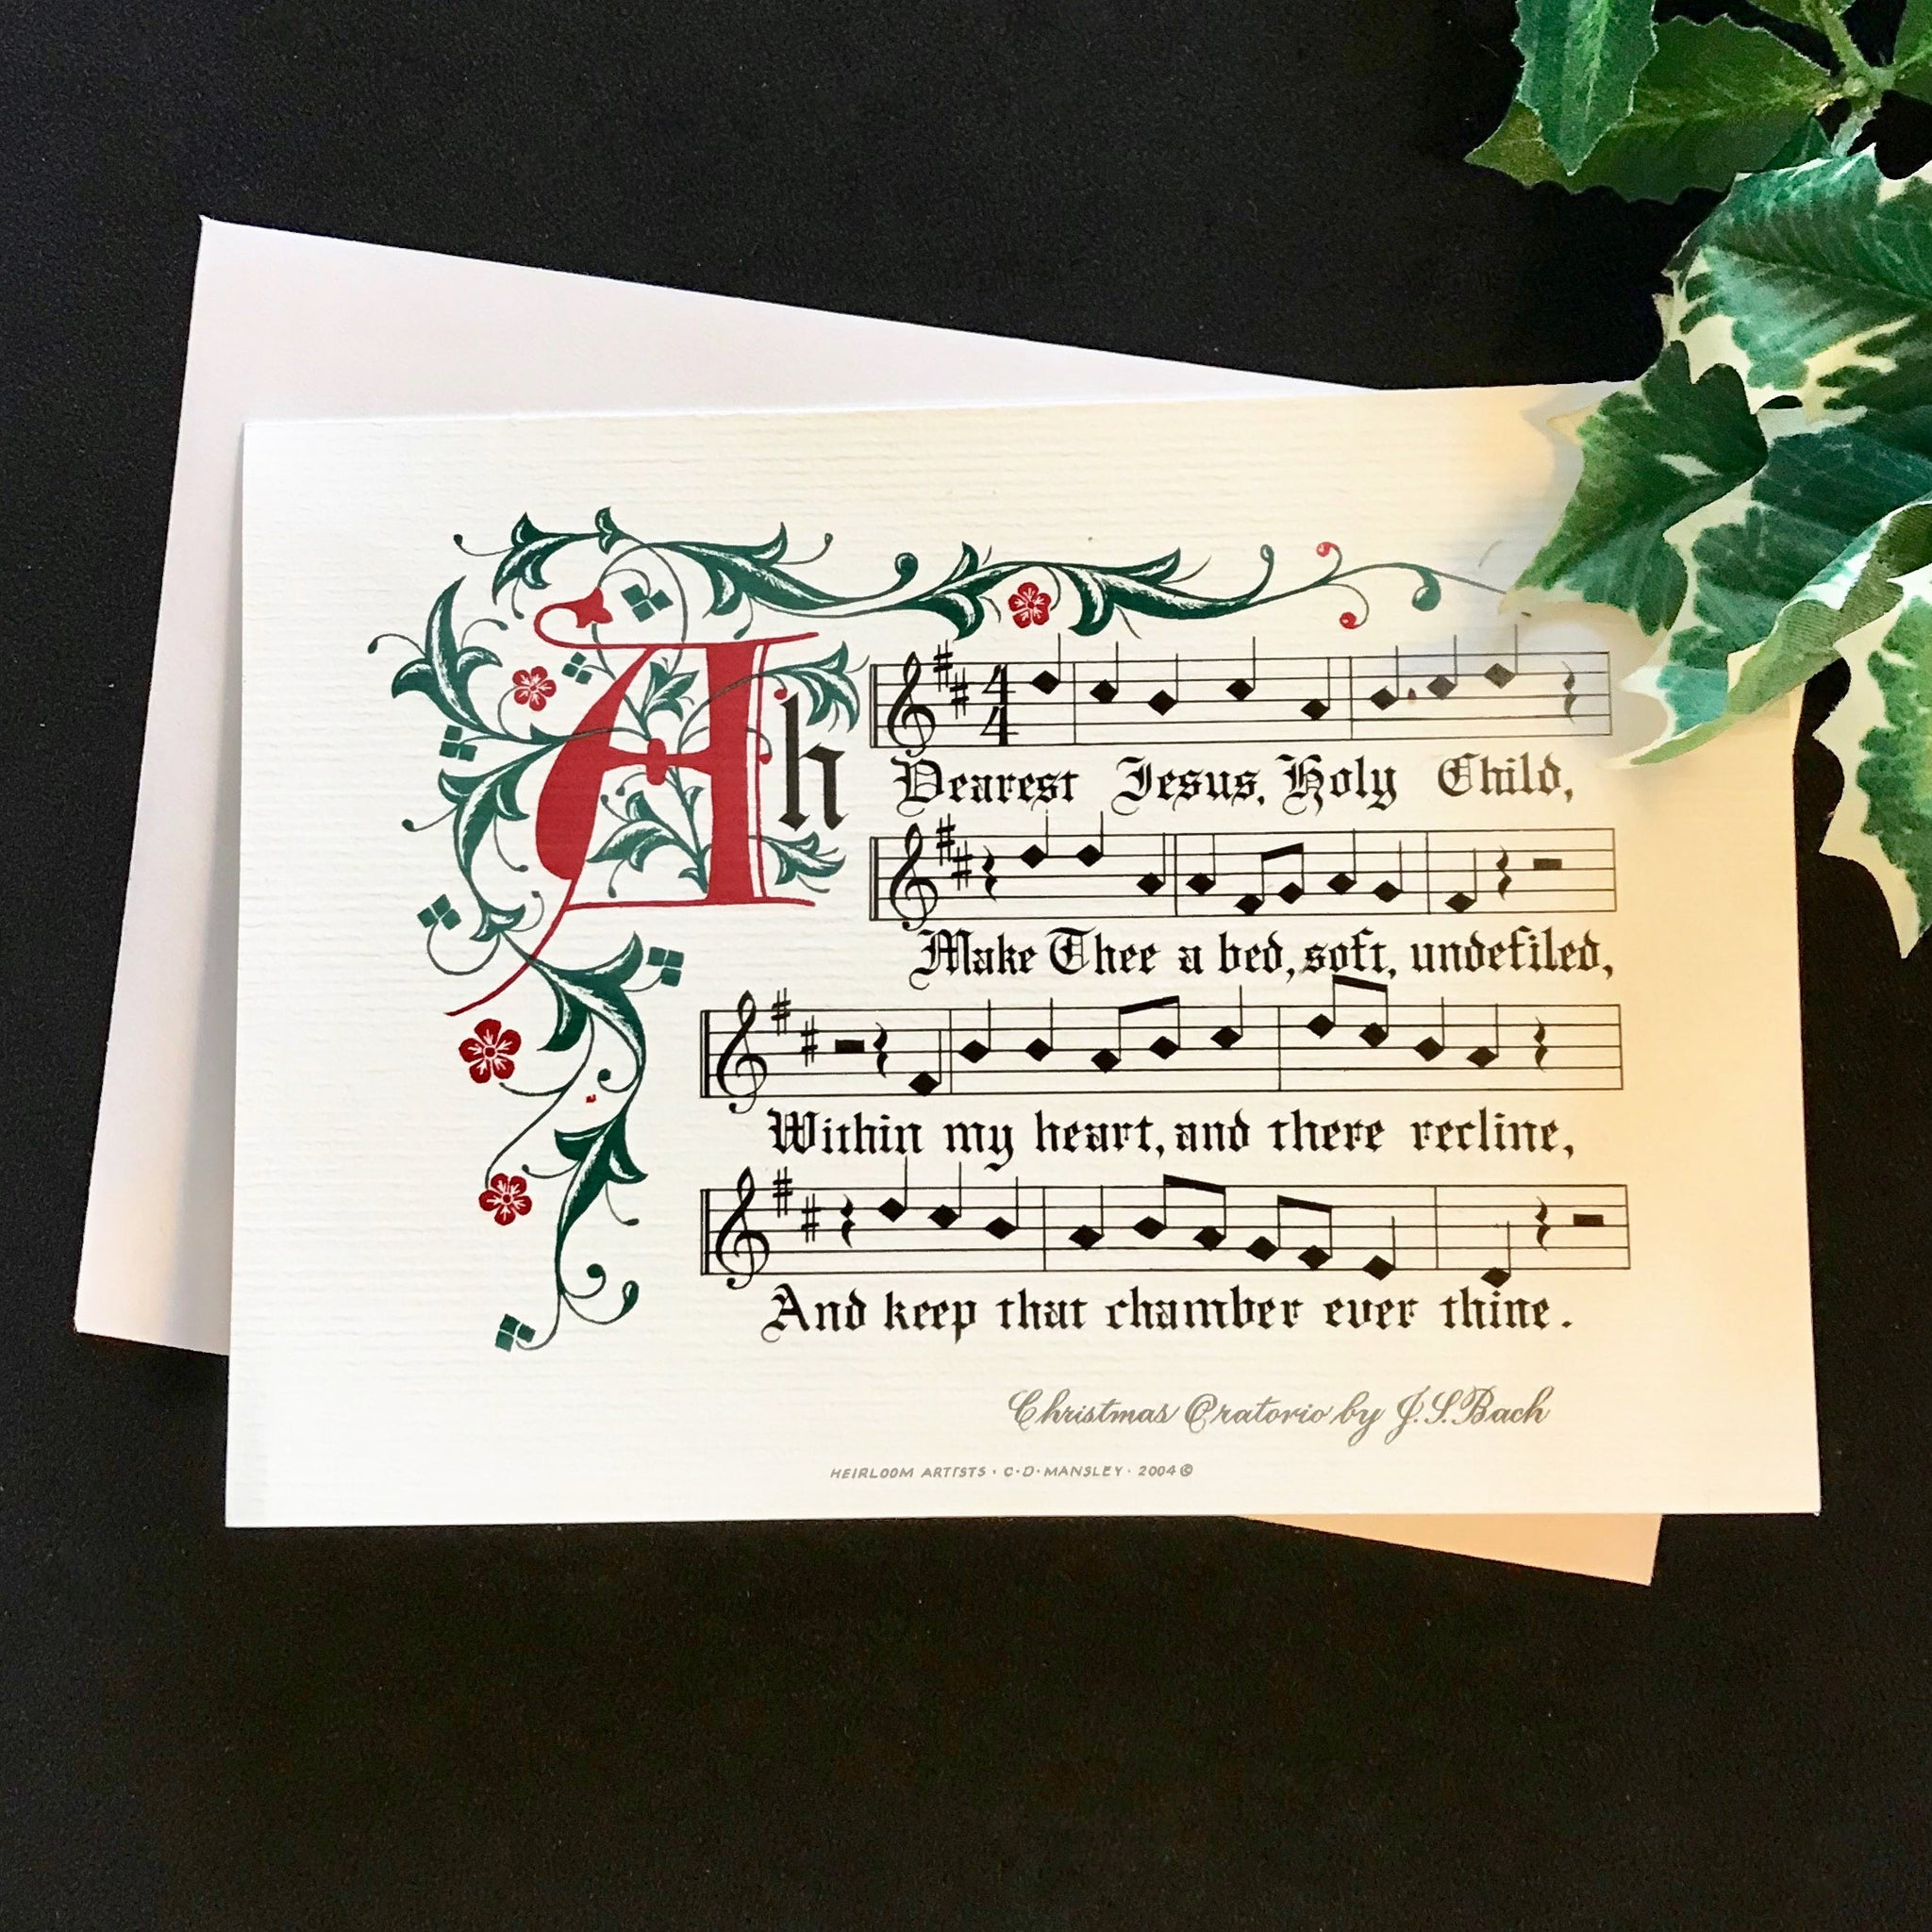 Ah dearest Jesus Holy Child Clifford Mansley Calligrapher Christmas Card